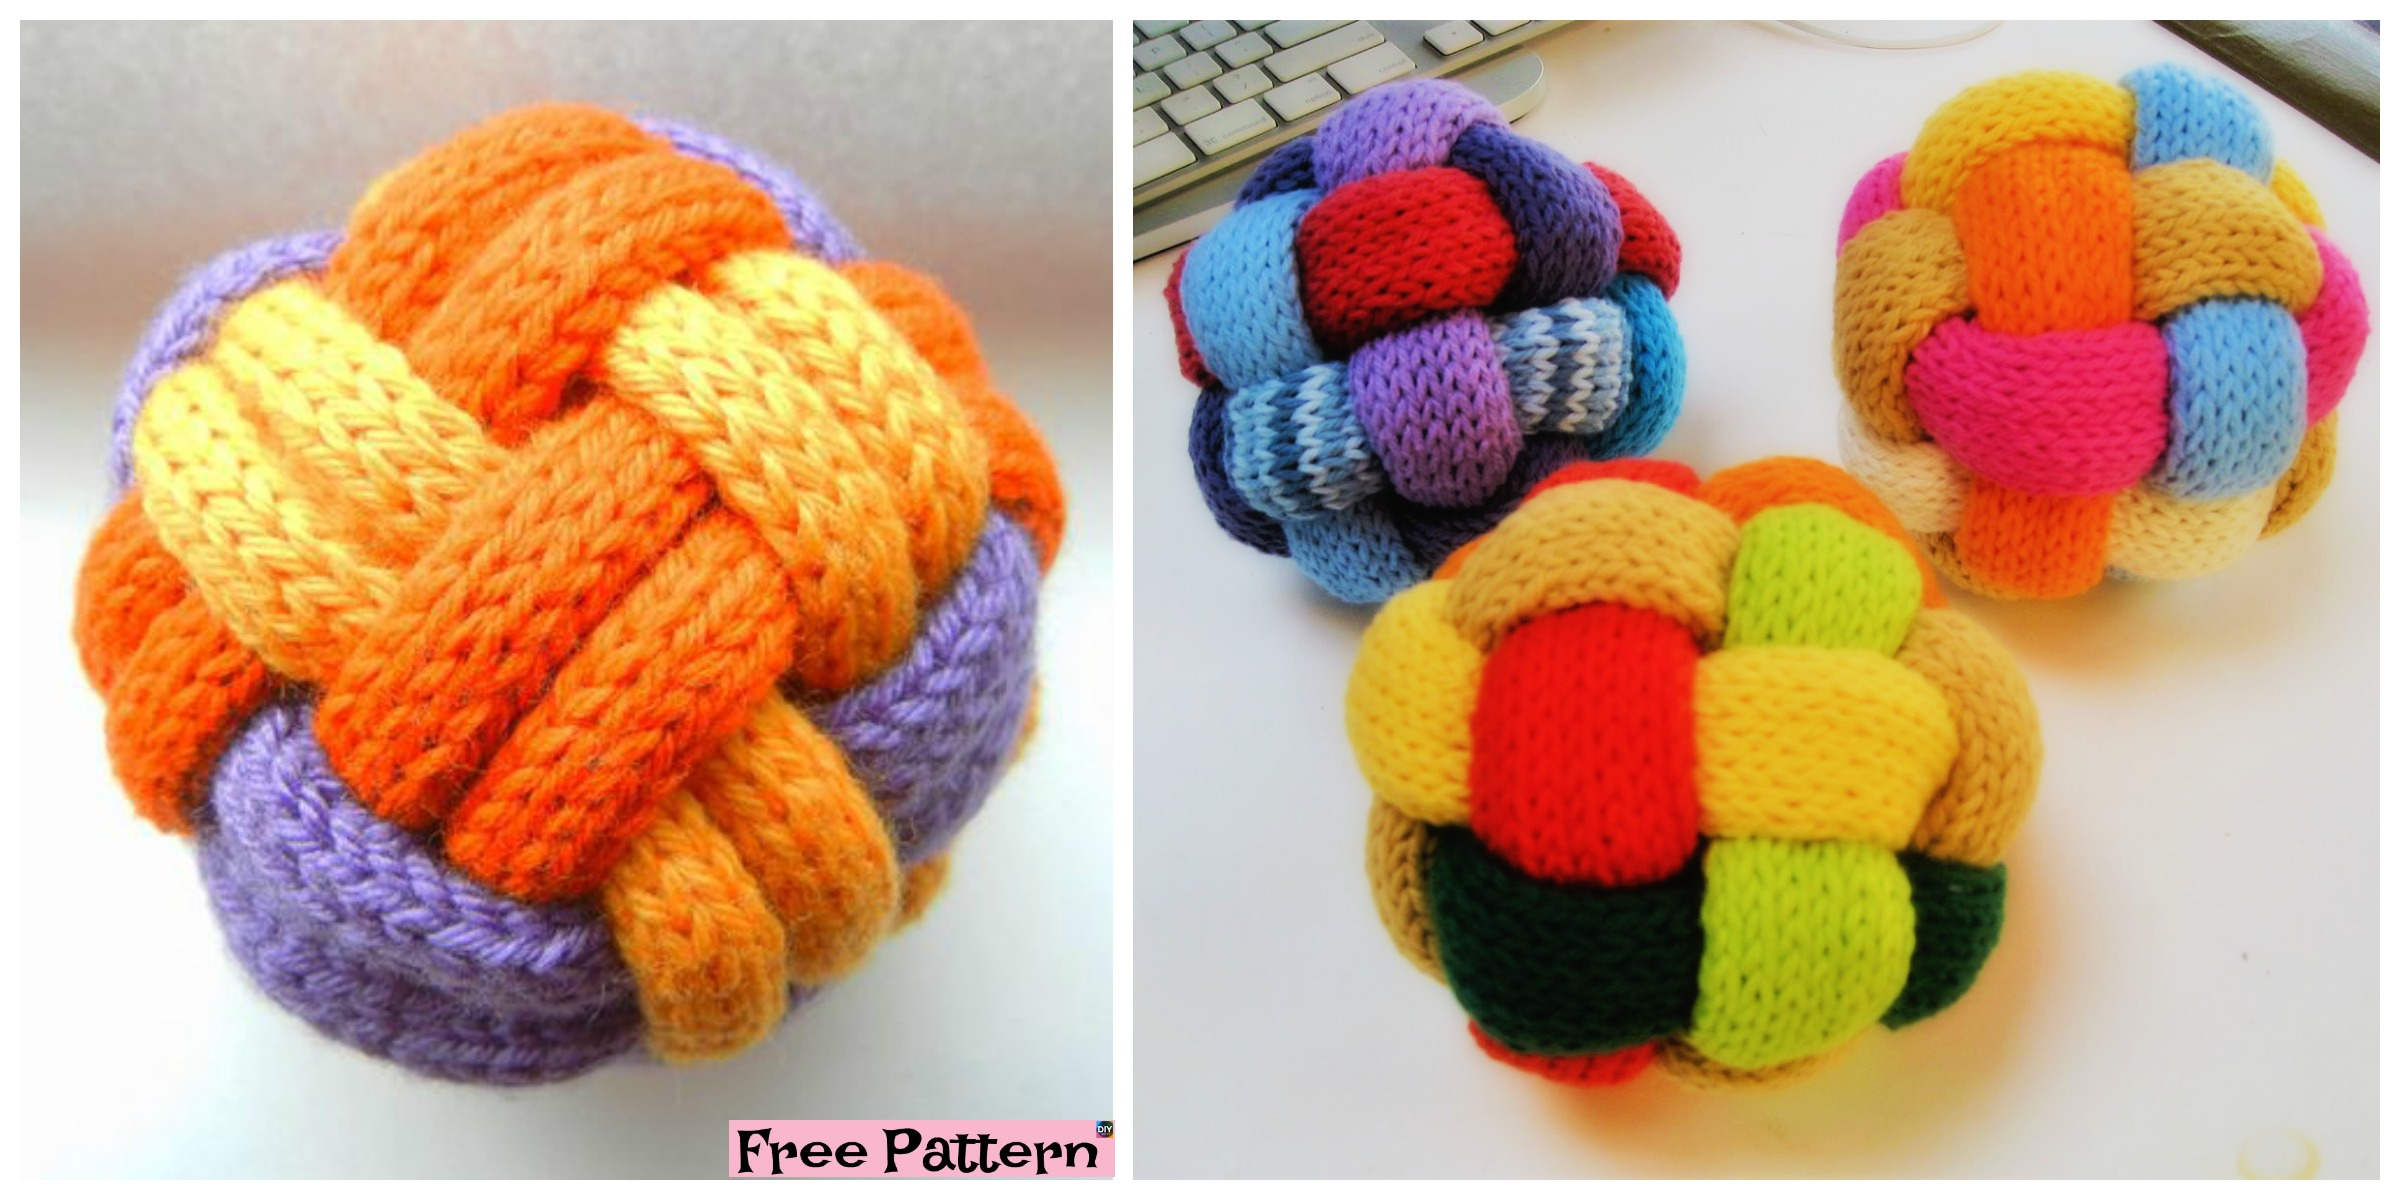 Decorative Knitted Braided Ball – Free Pattern